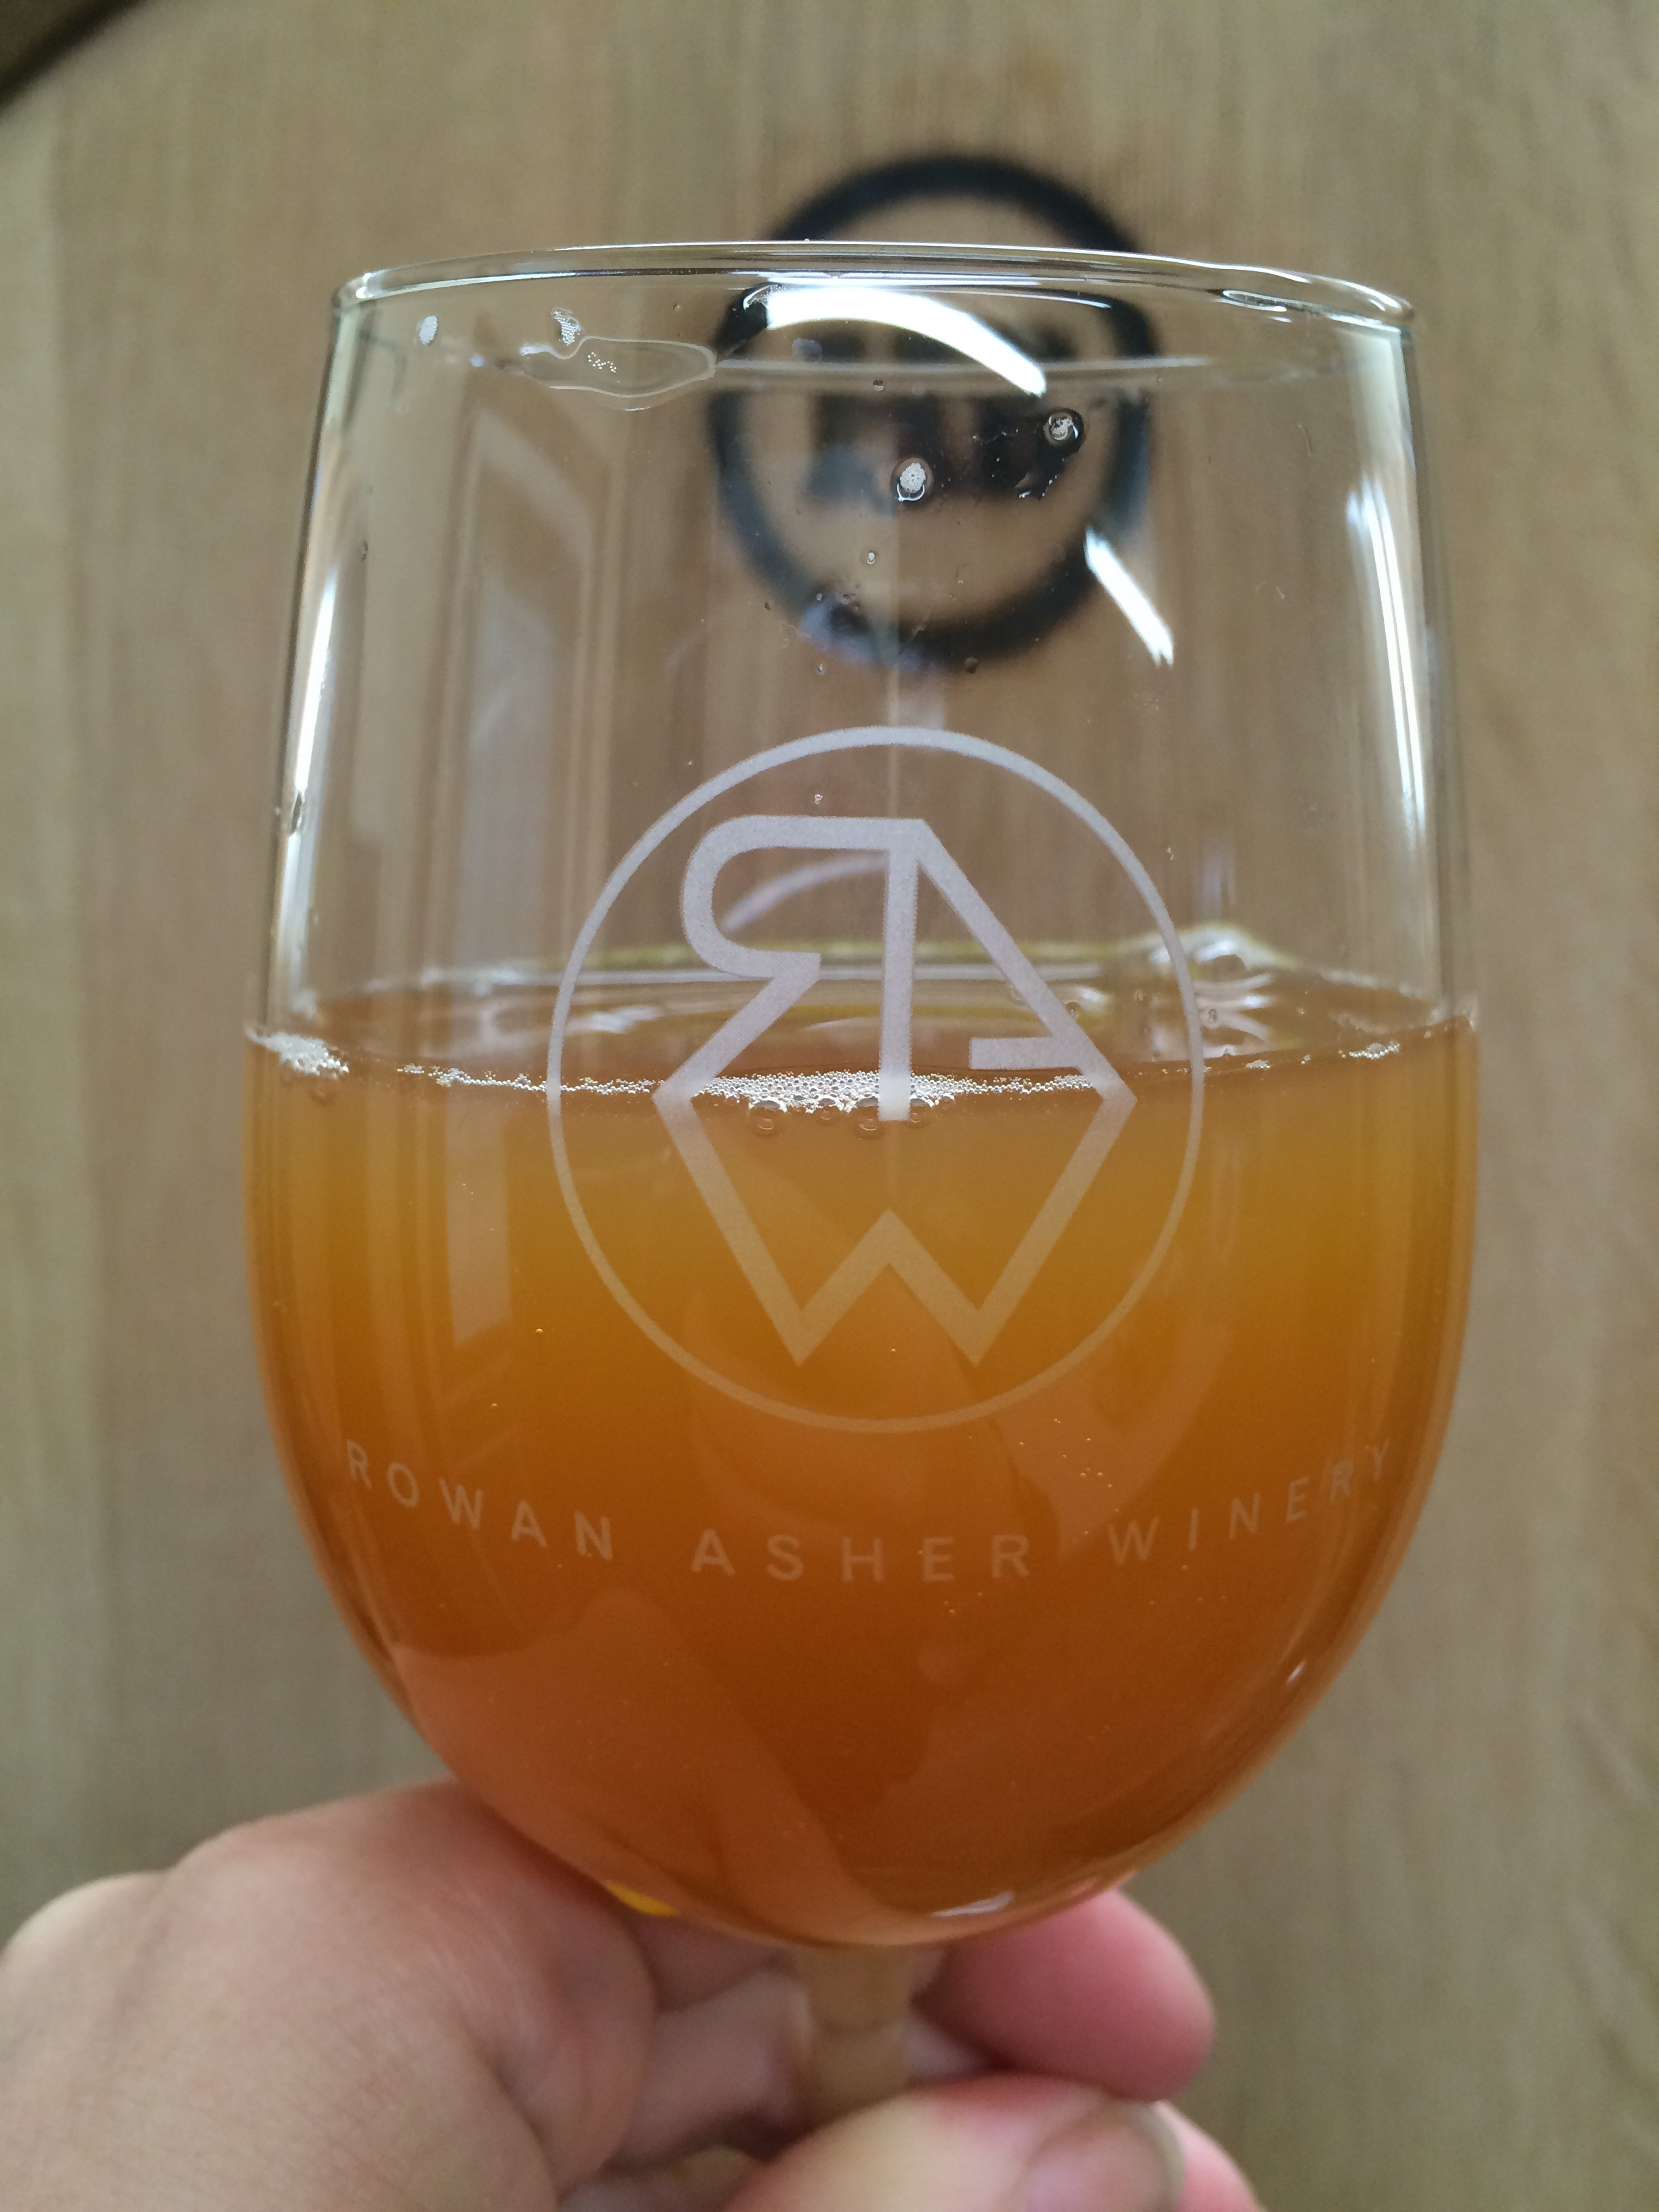 A young hard cider from Rowan Asher Winery & Hard Cidery